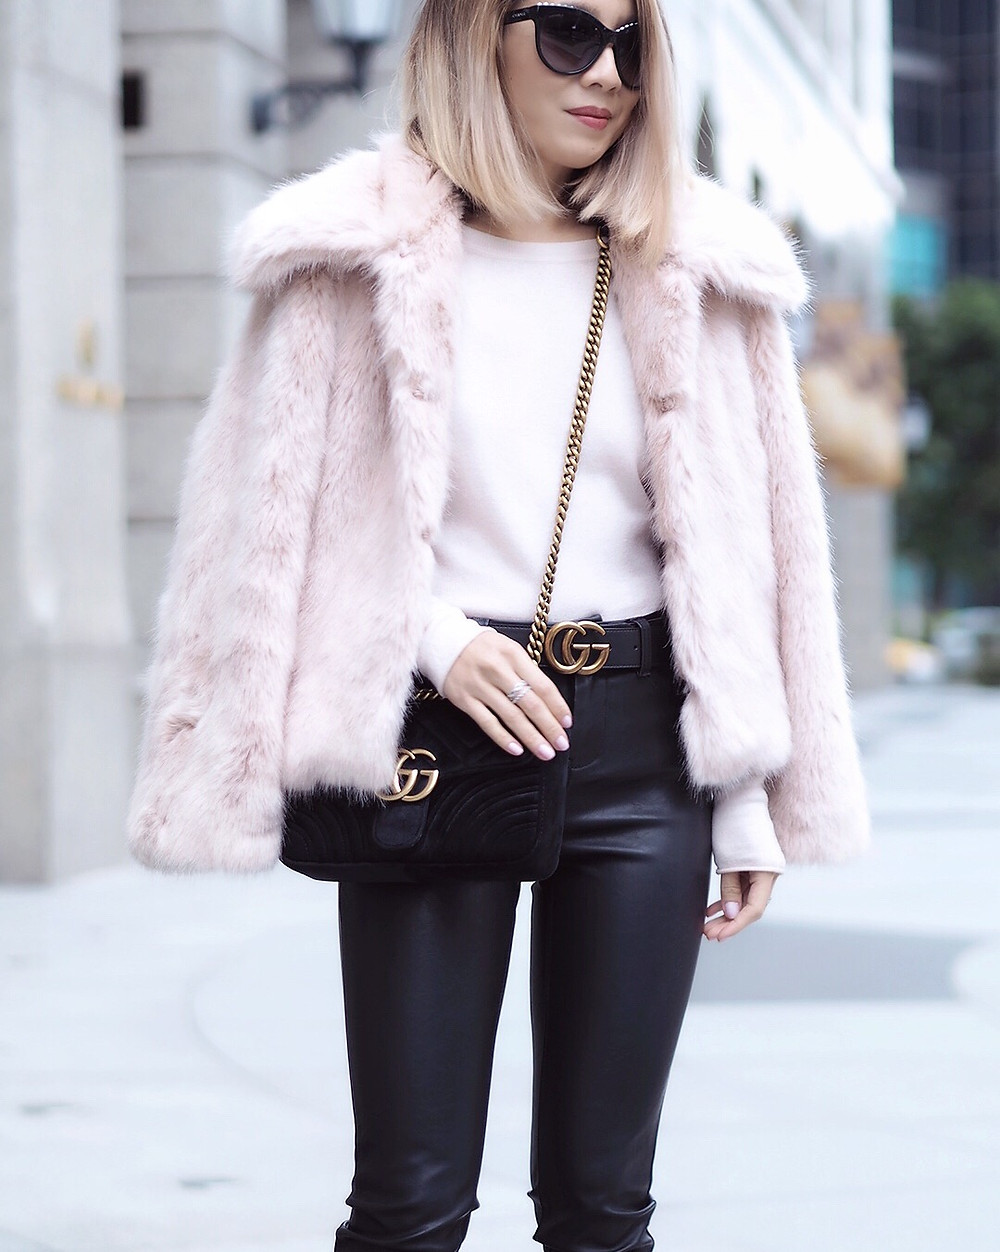 Topshop Faux Fur Jacket | Lam in Louboutins